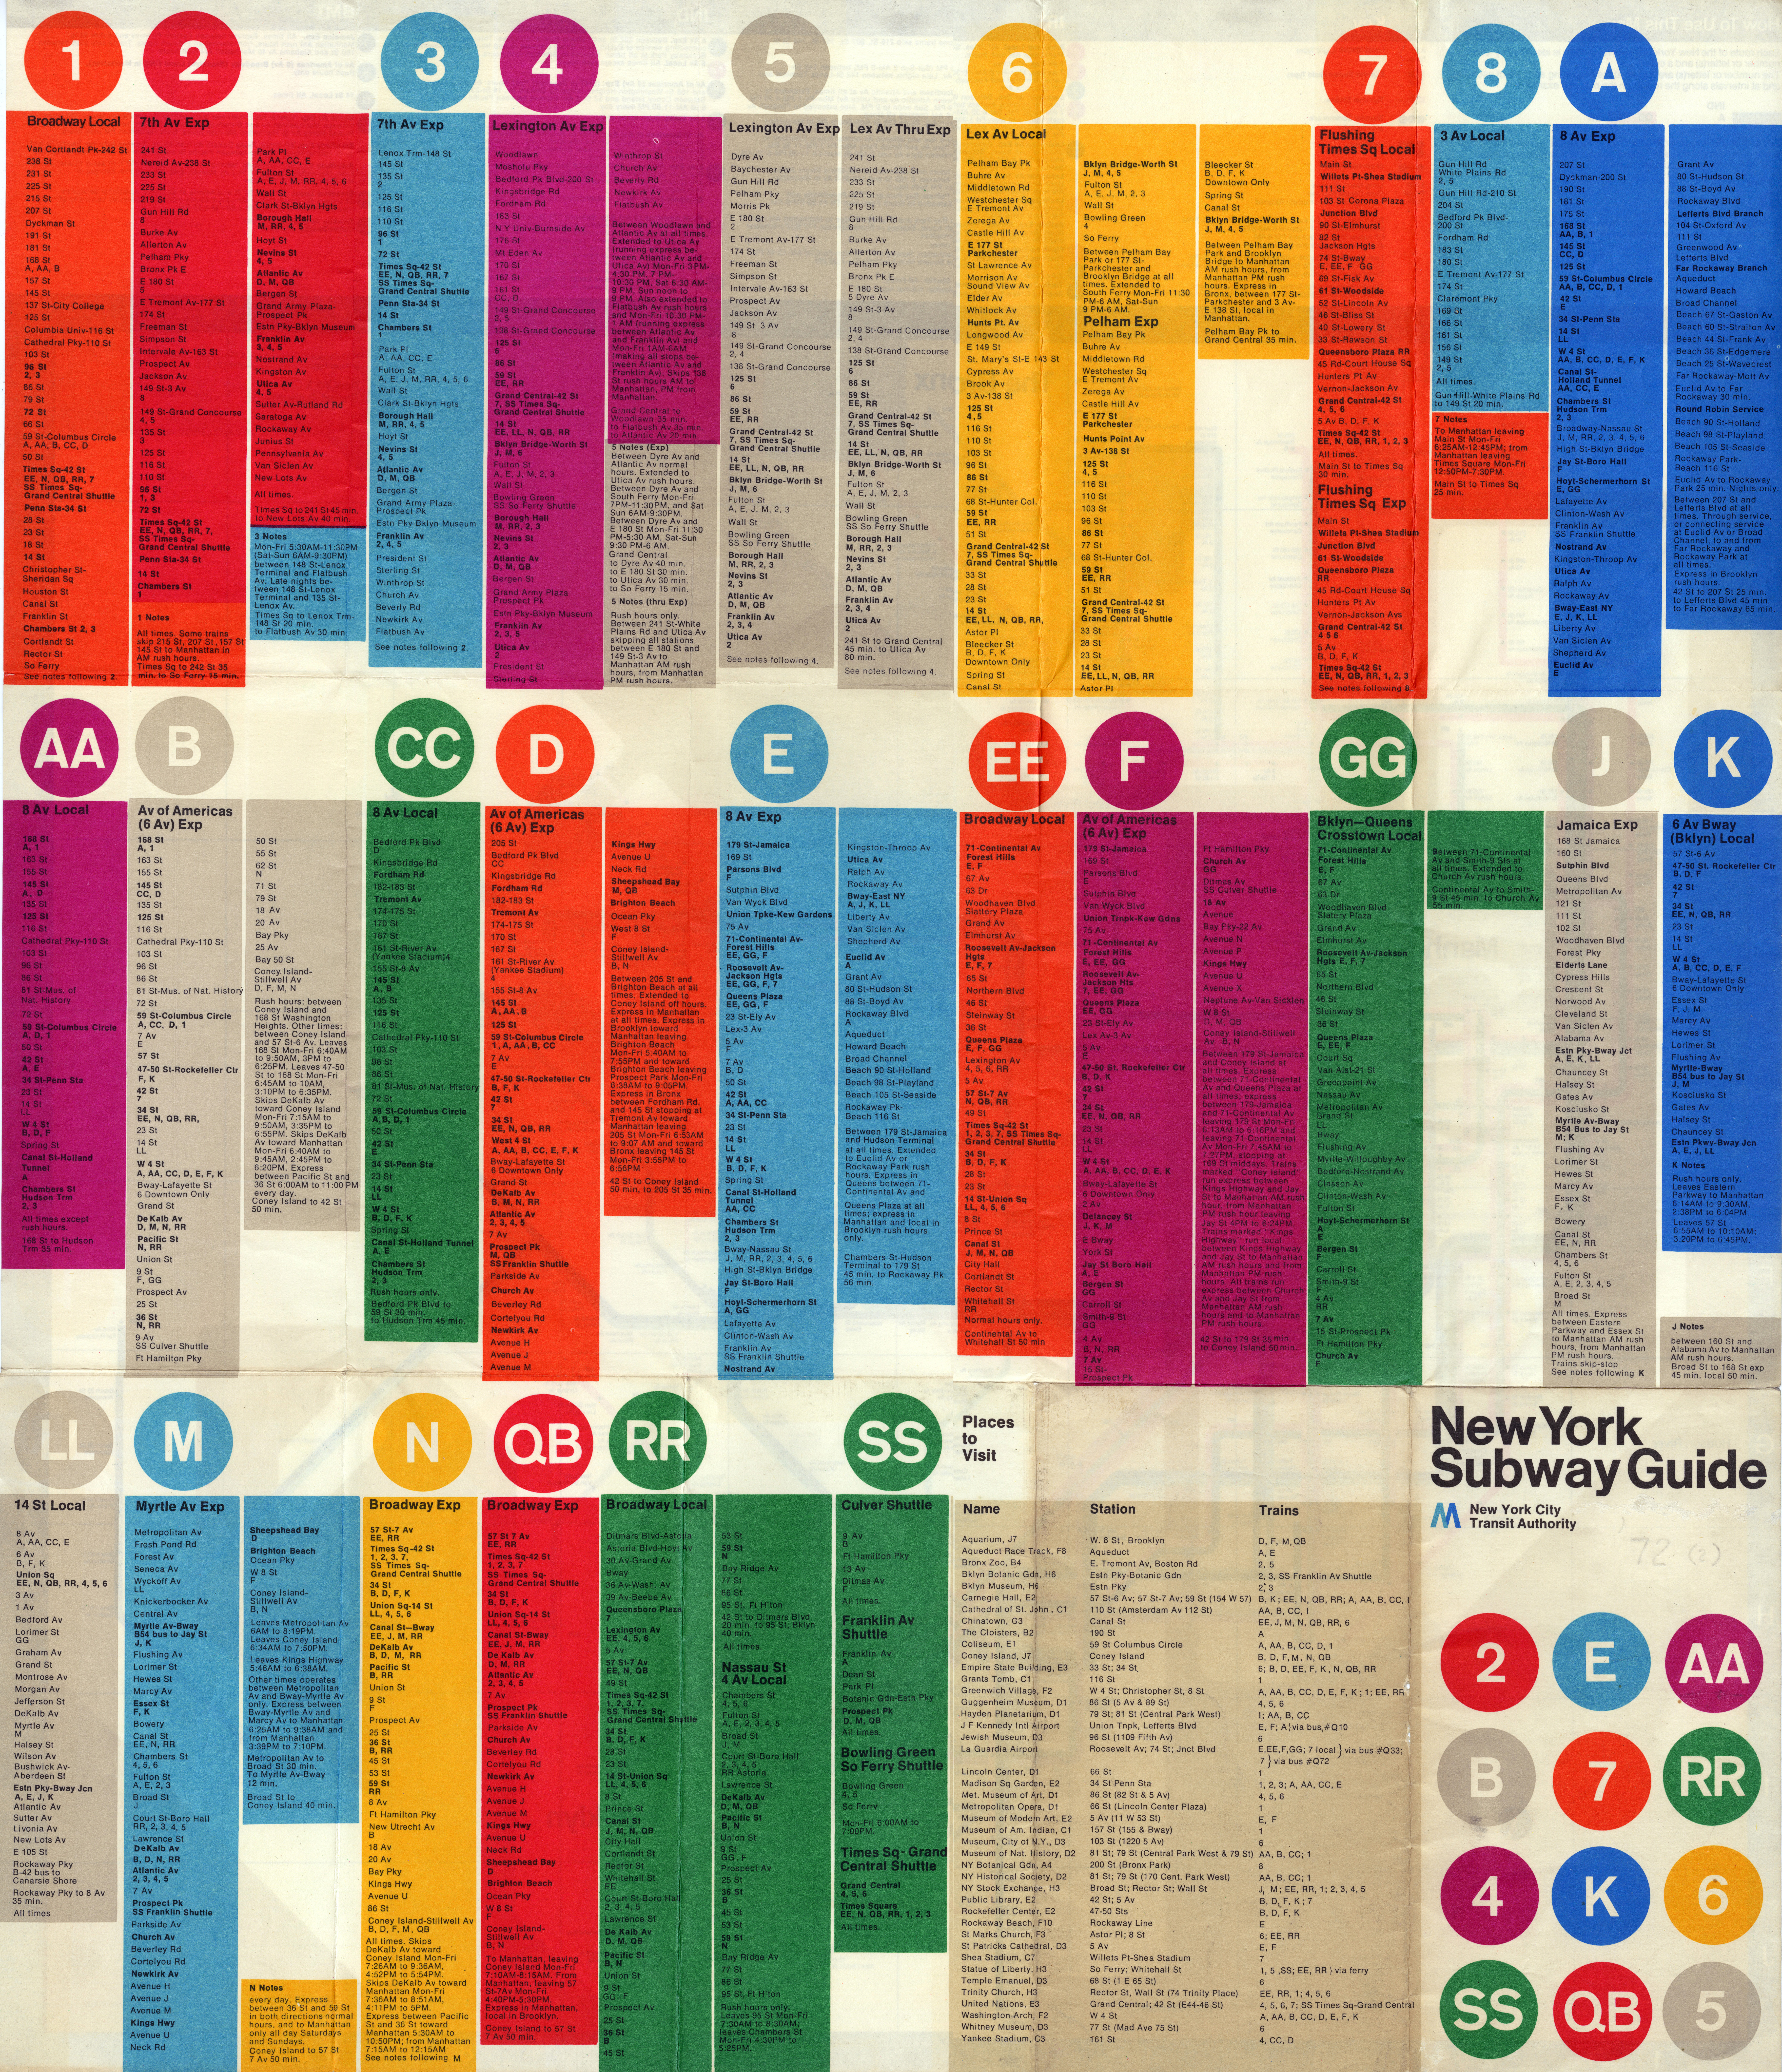 New York City Subway Map 1979.New York City Transit Authority On Board With Design